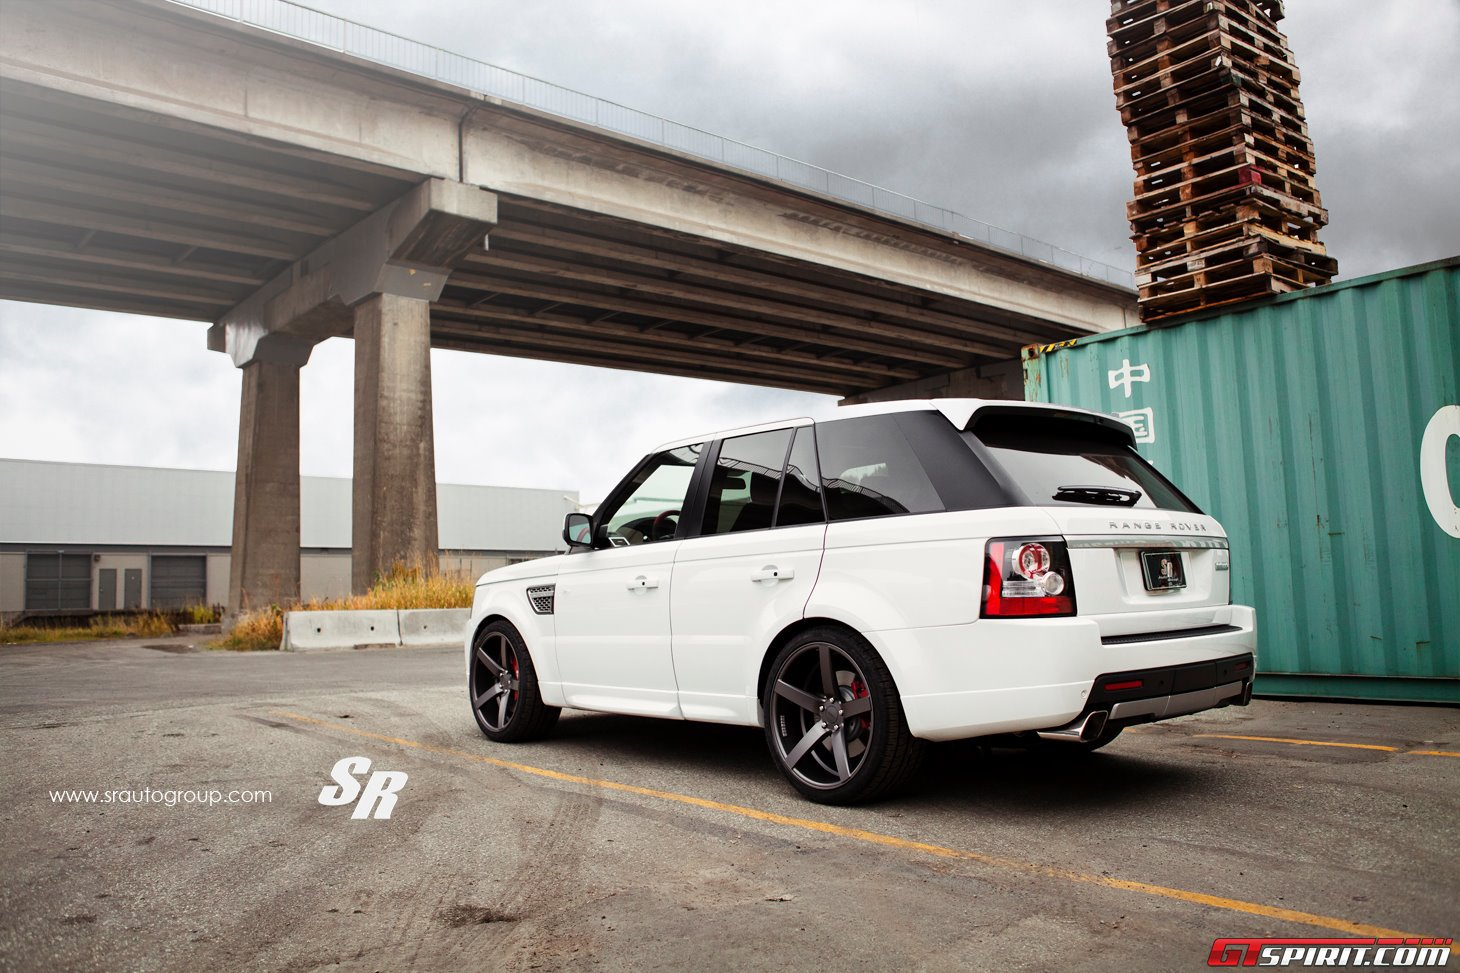 Range Rover Autobiography by SR Auto Group Photo 5